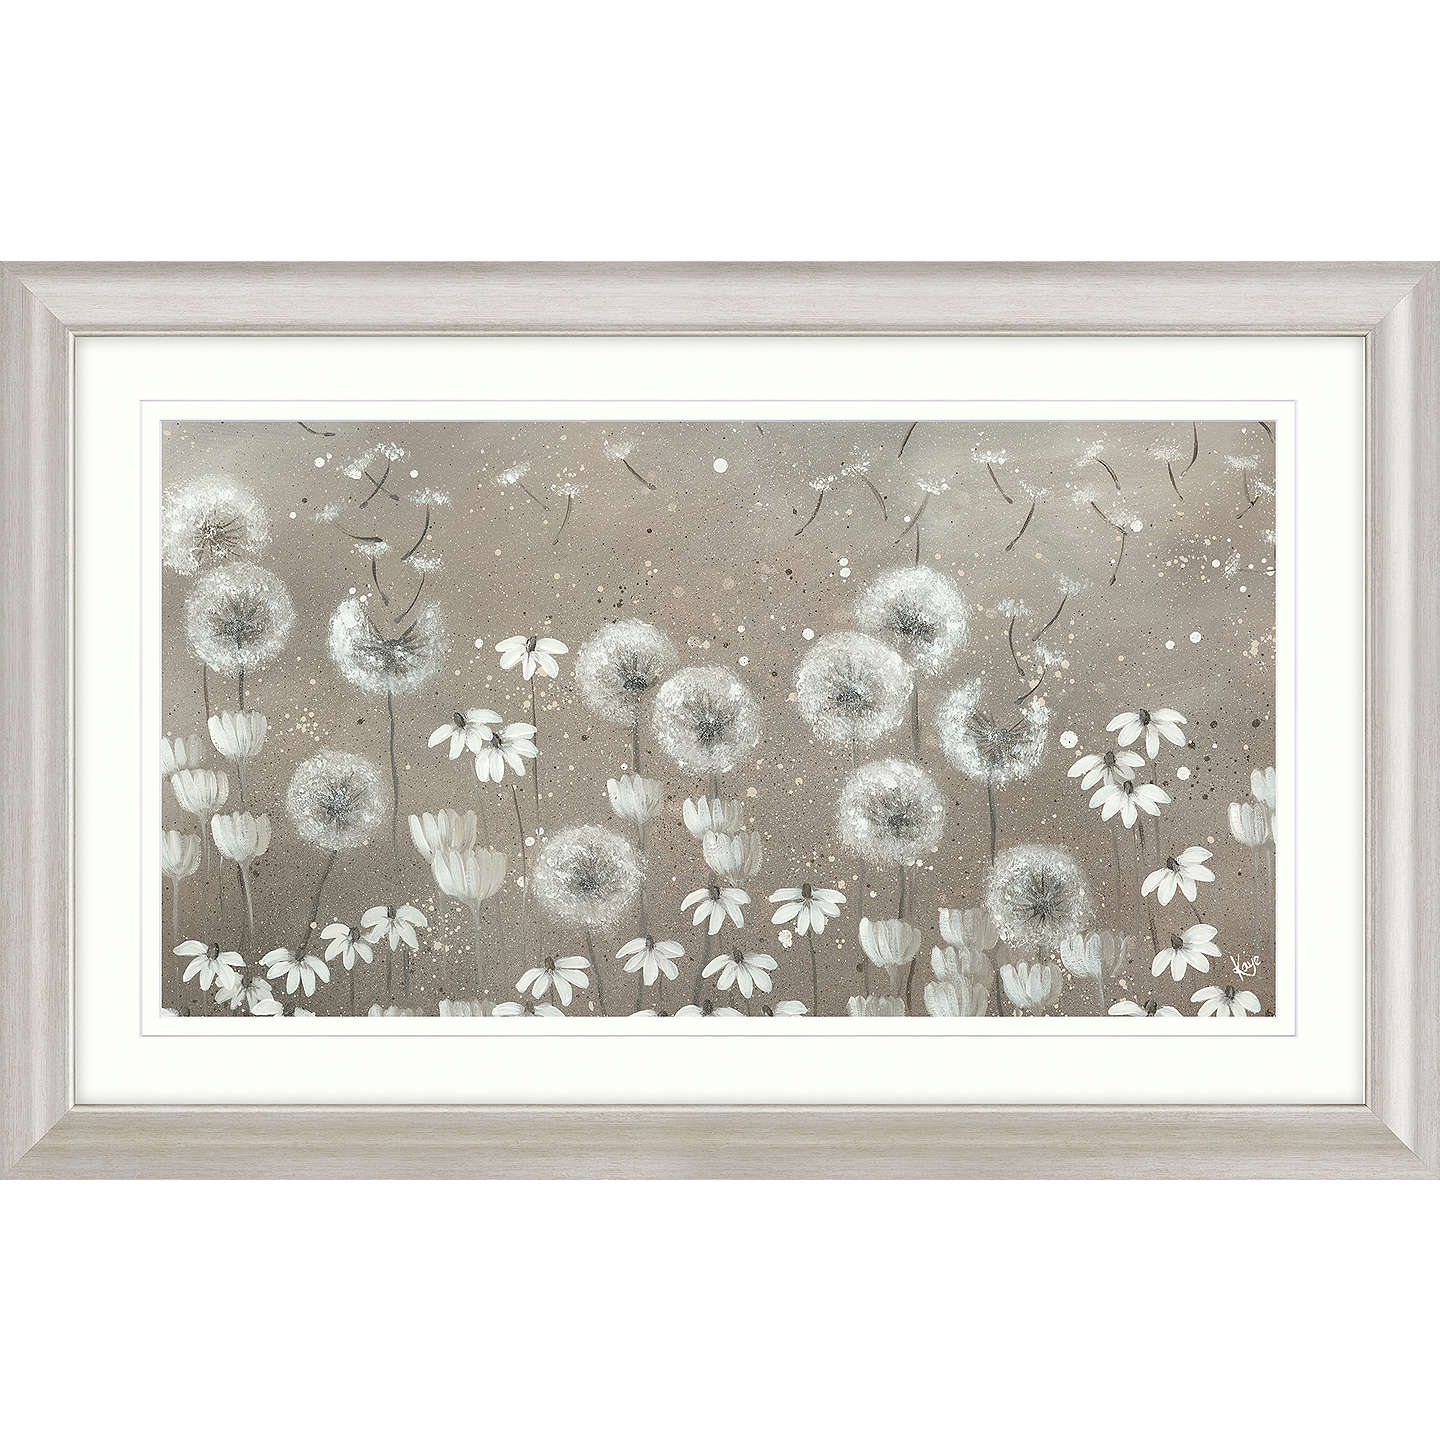 BuyKaye Lake - Day Dreaming Dandelions Framed Print, 110.5 x 70.5cm Online at johnlewis.com